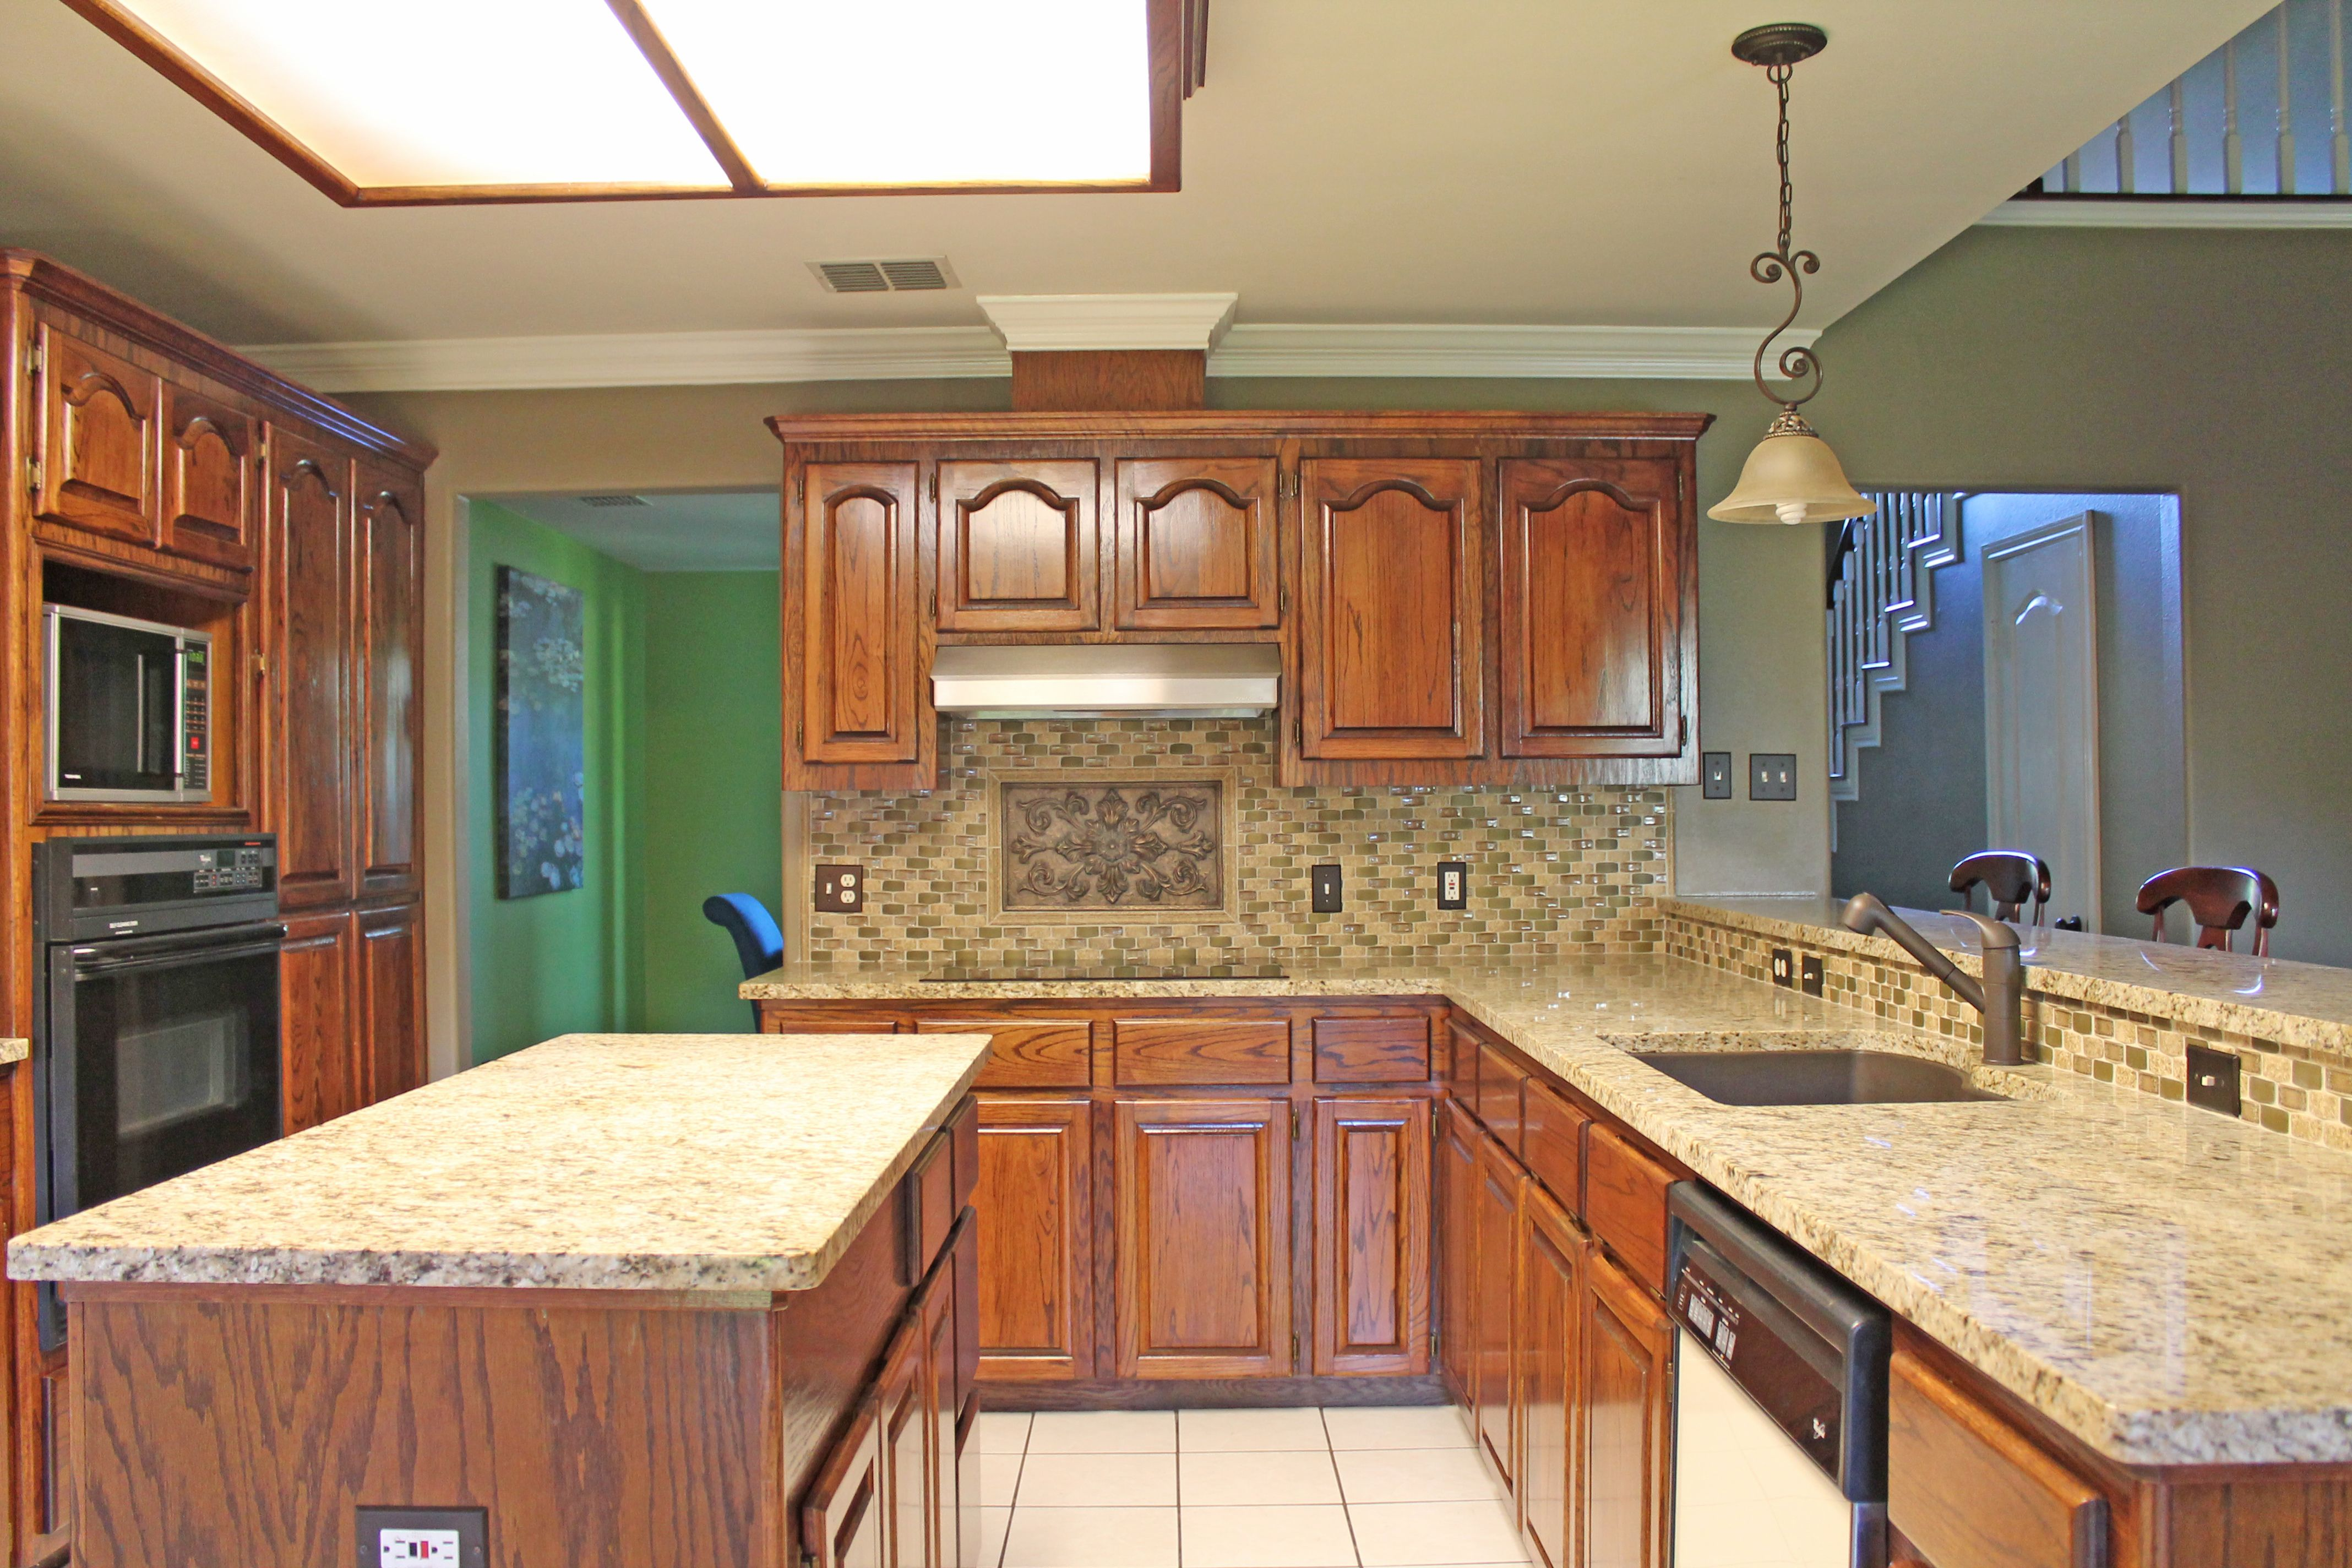 #Kitchen design with light beige granite countertops and ... on Backsplash Ideas With Granite Countertops  id=96029